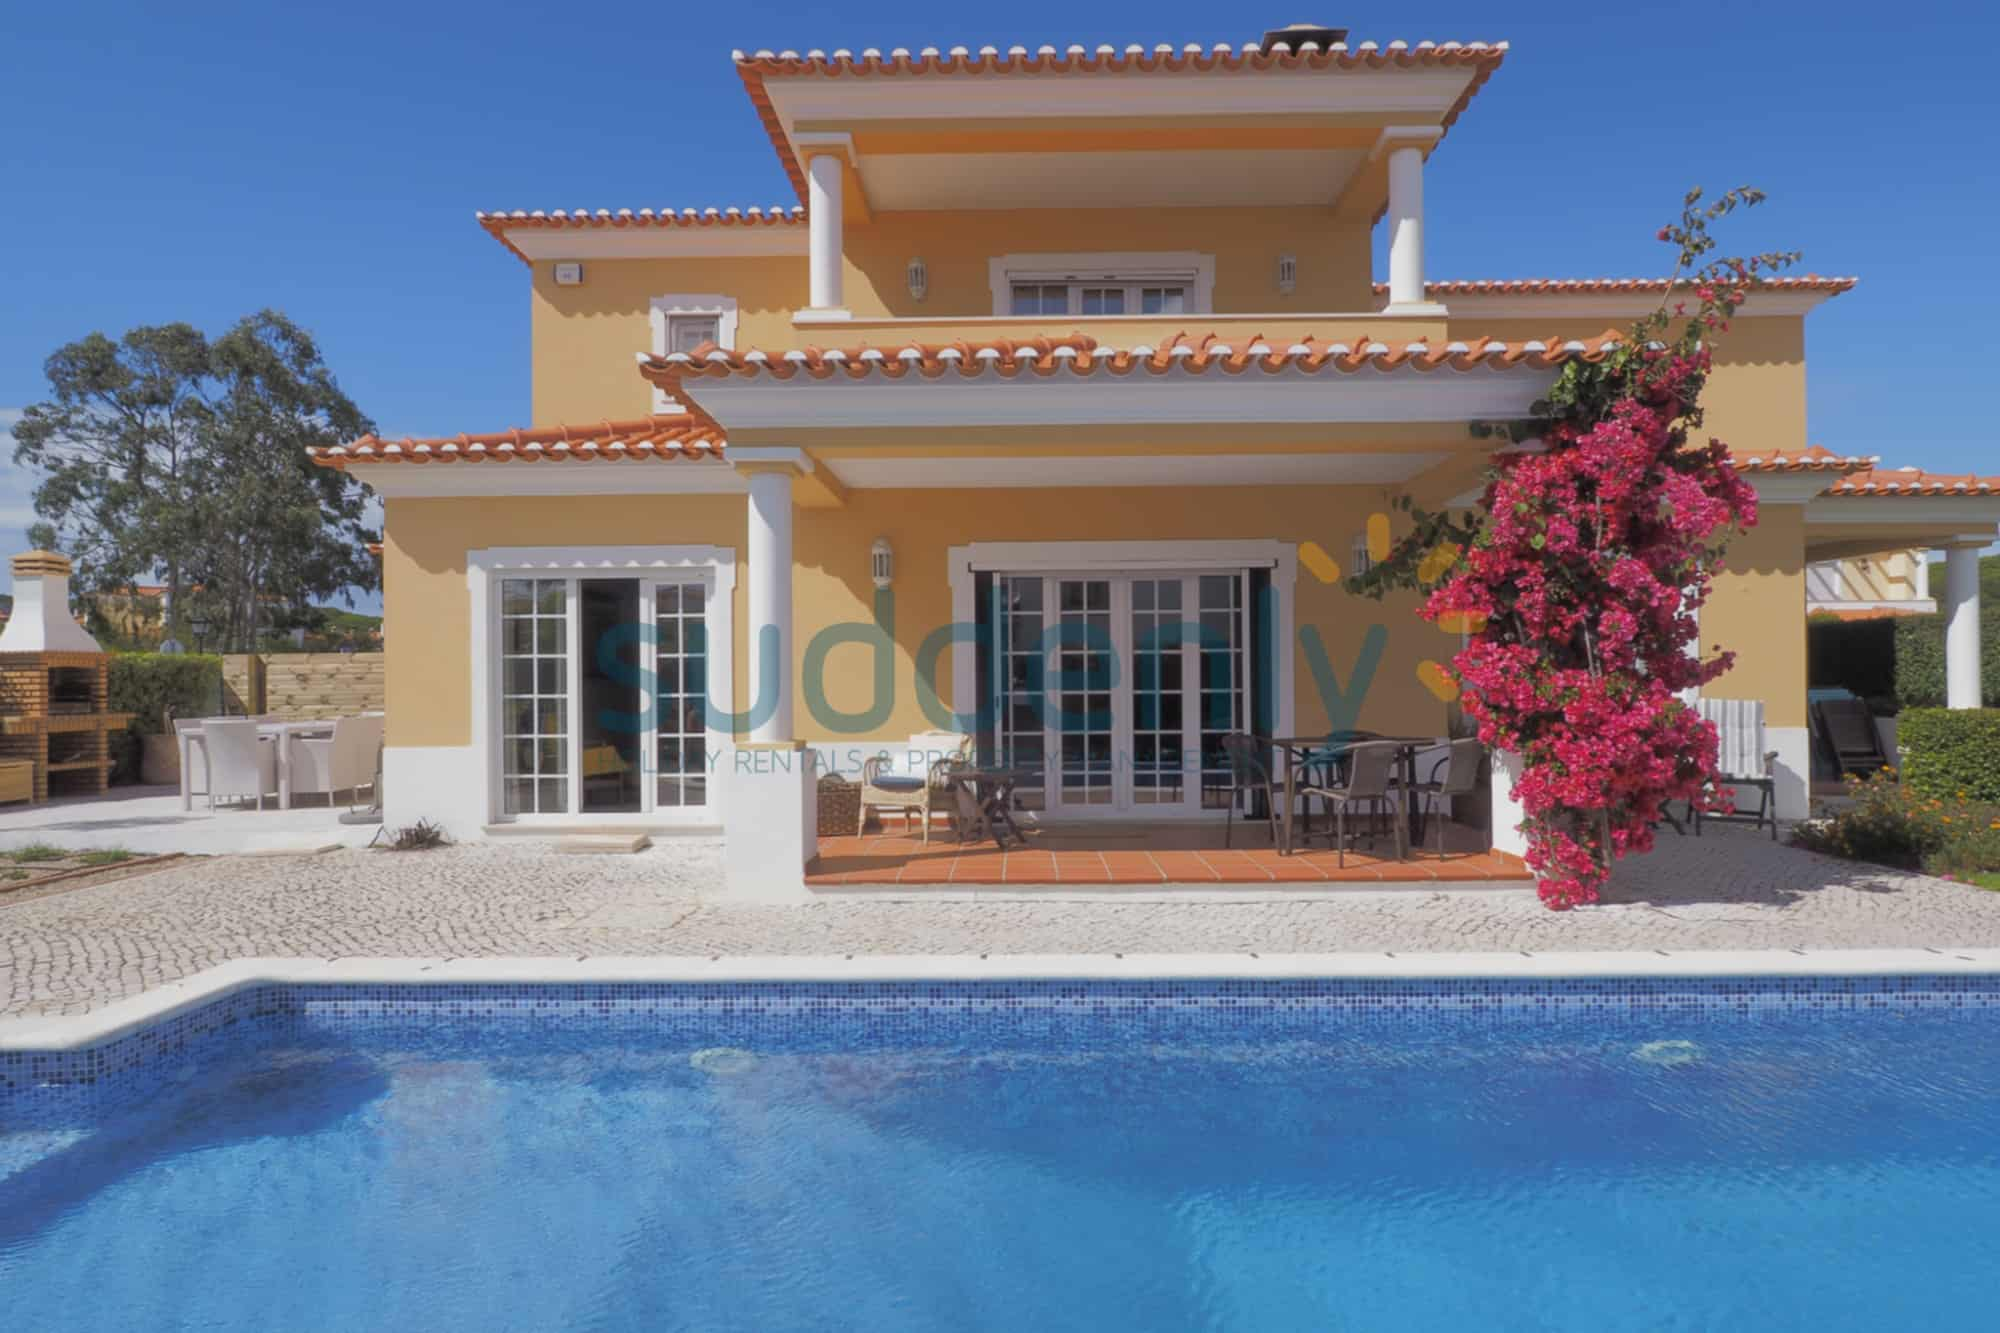 Holiday Rentals in Praia D'El Rey 321